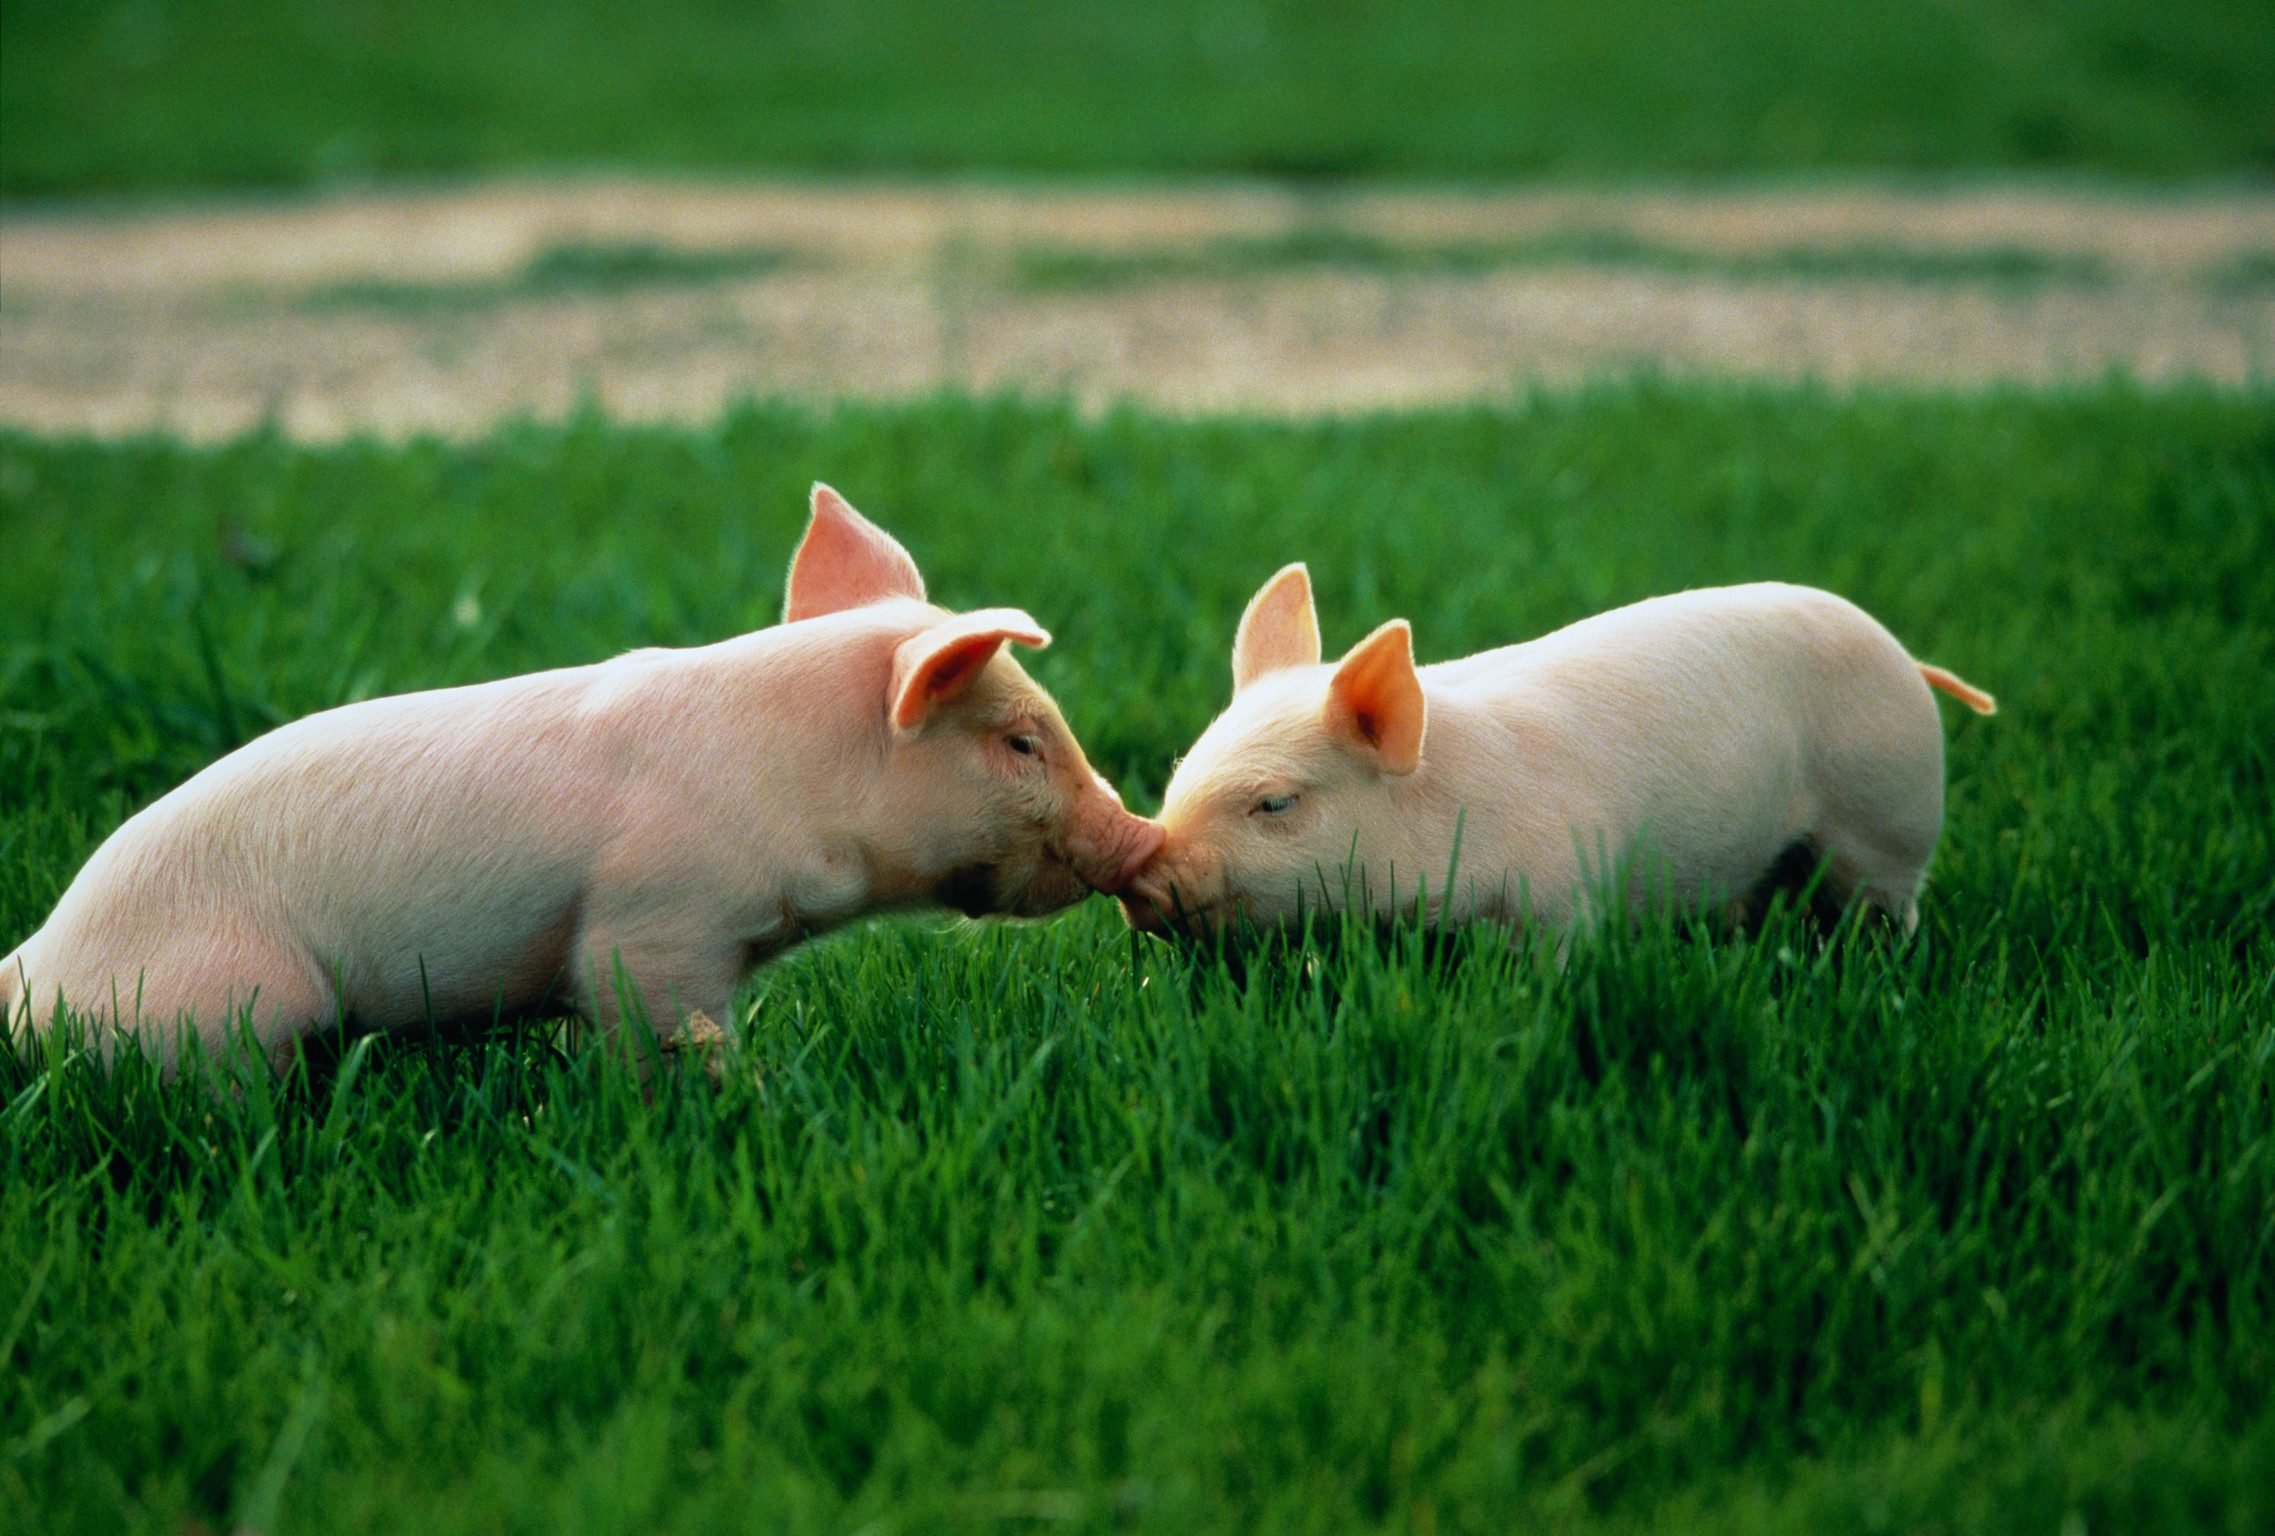 Two piglets in a field touching noses